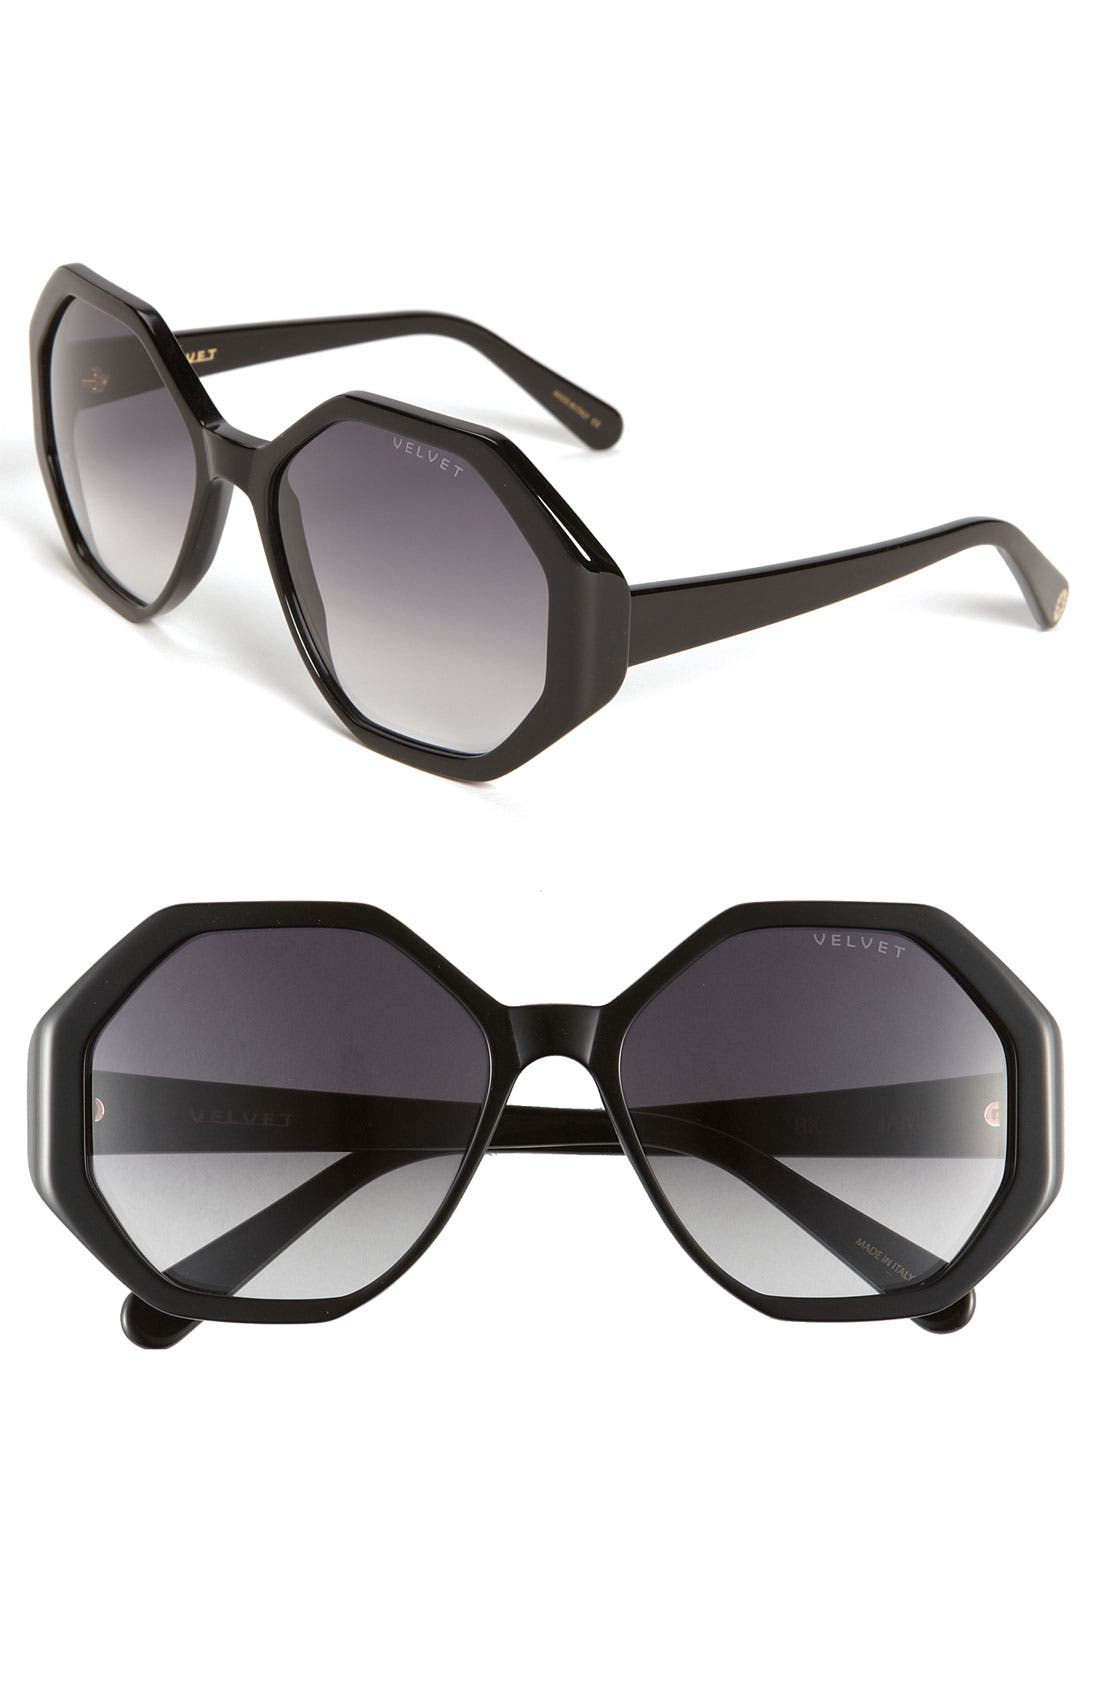 Main Image - Velvet Eyewear 'Jami' 57mm Sunglasses